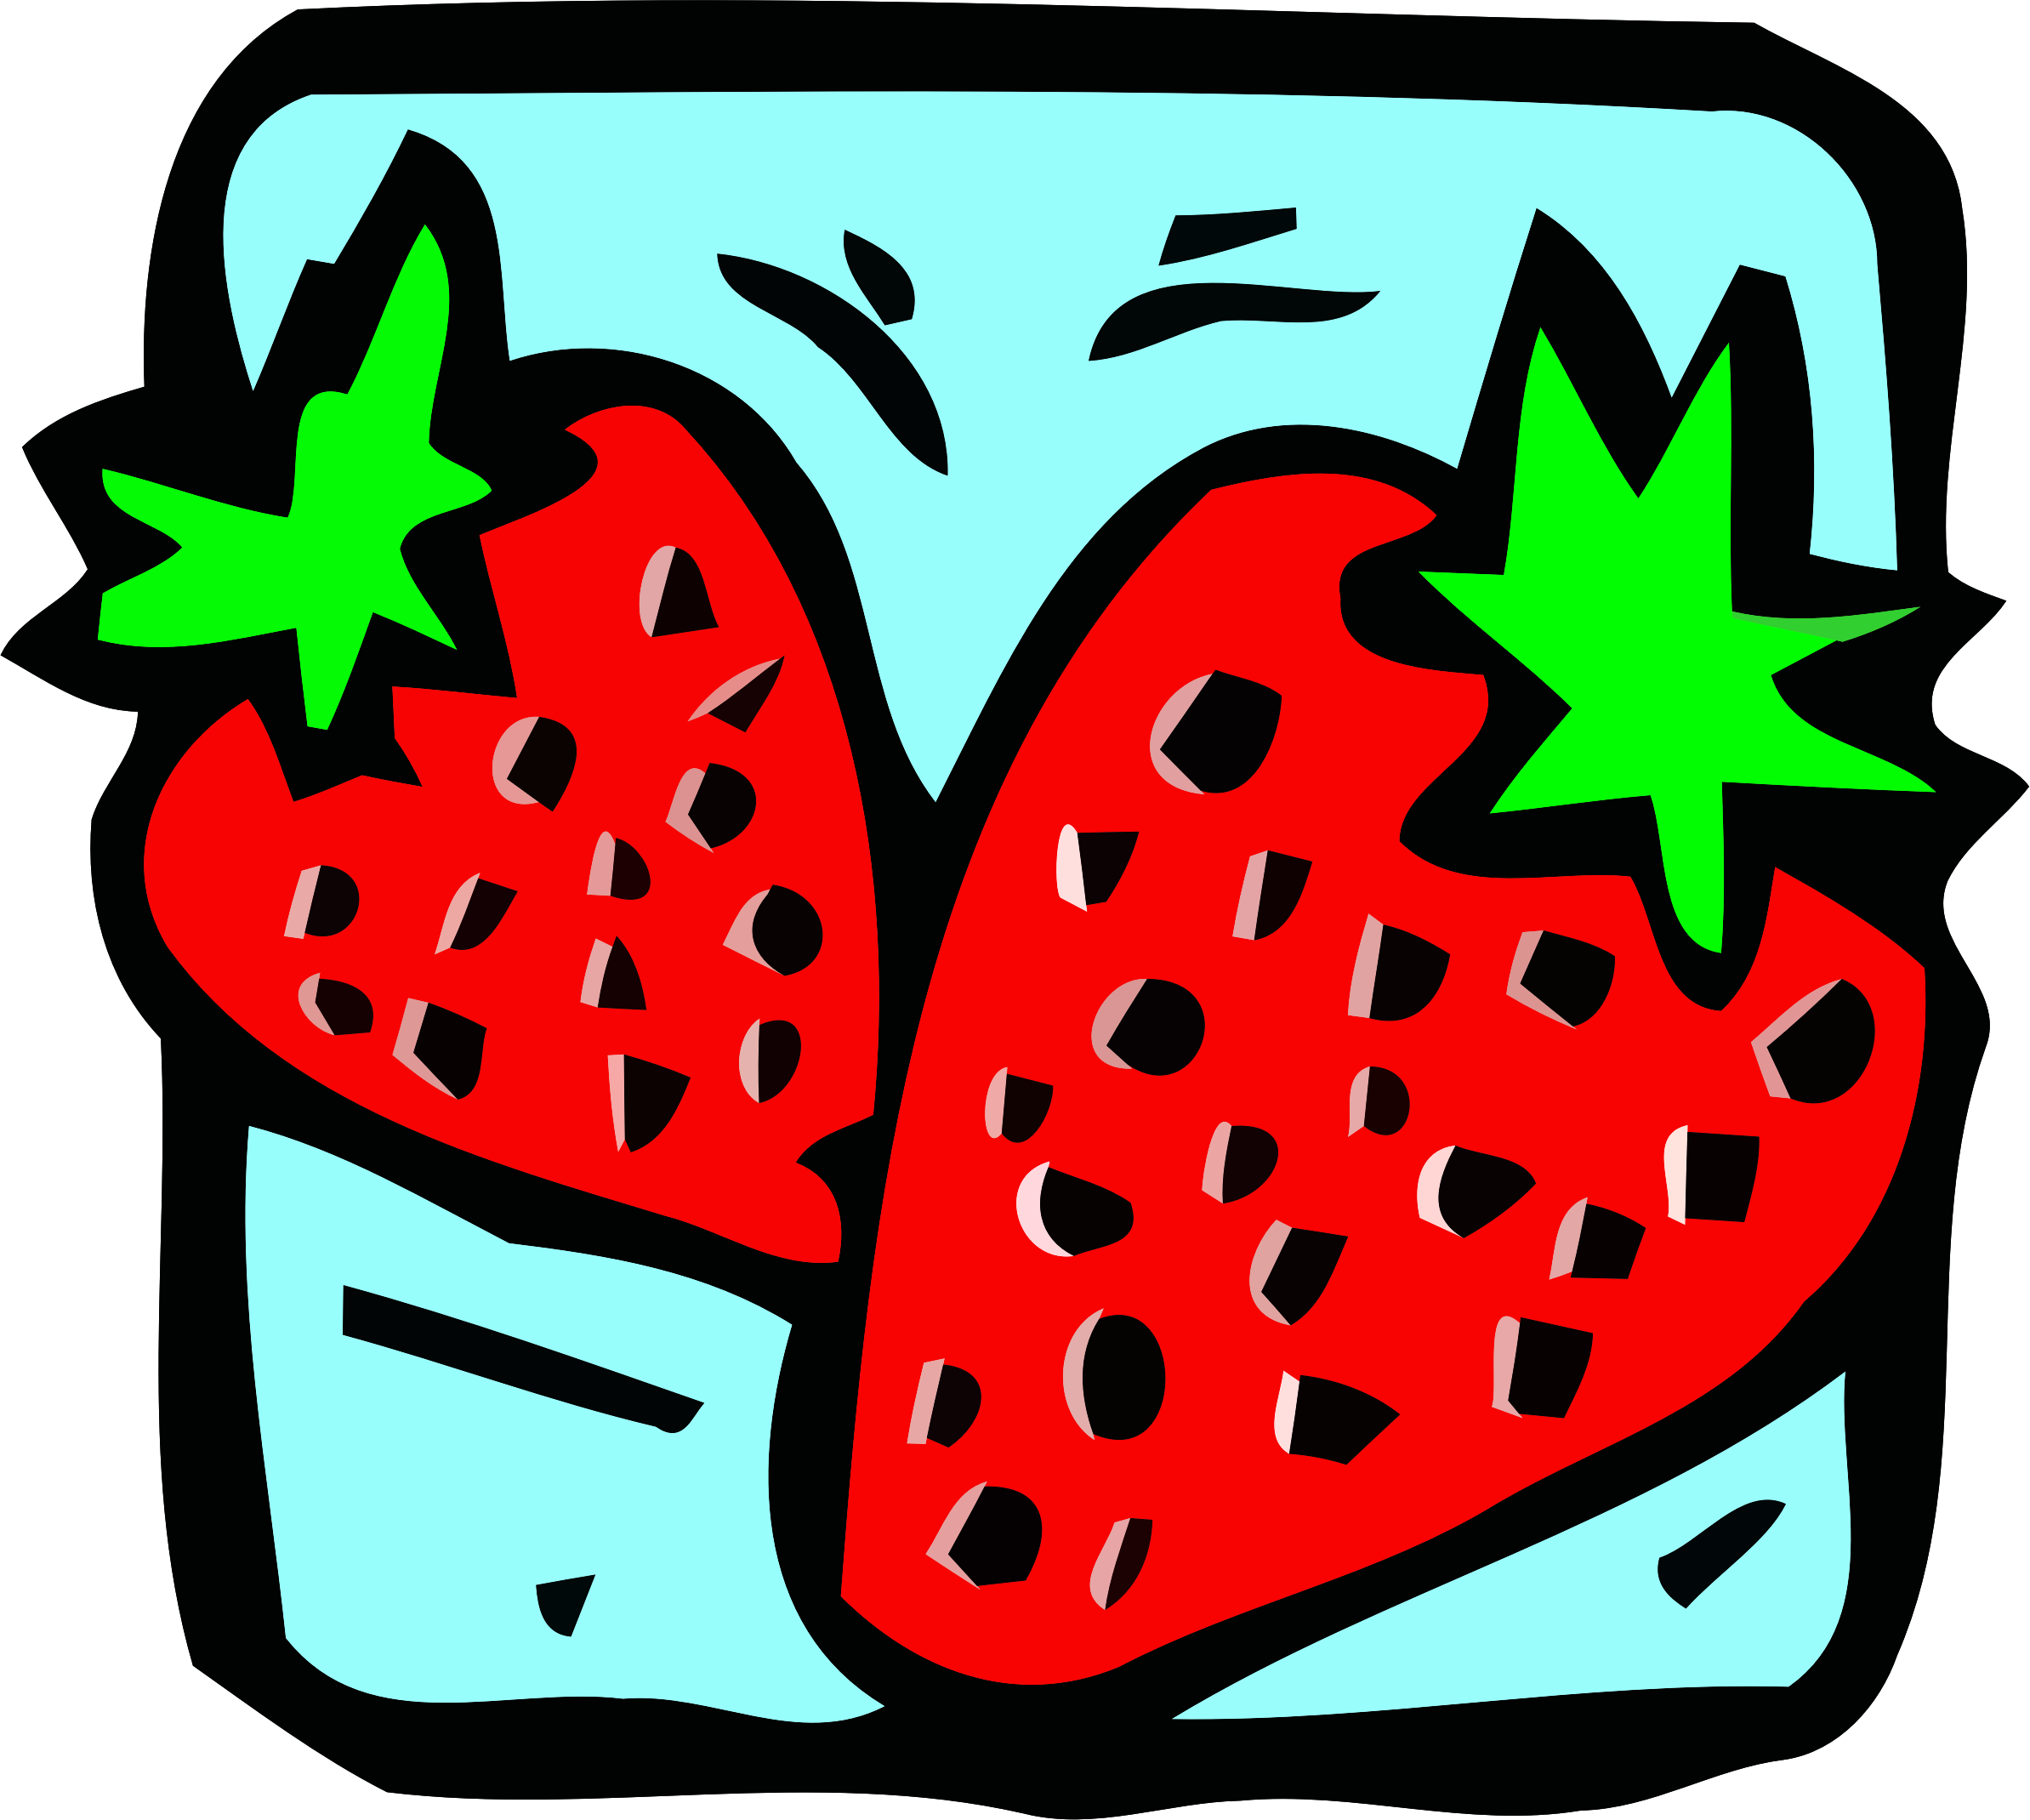 Food and drink icon - strawberry by Firkin